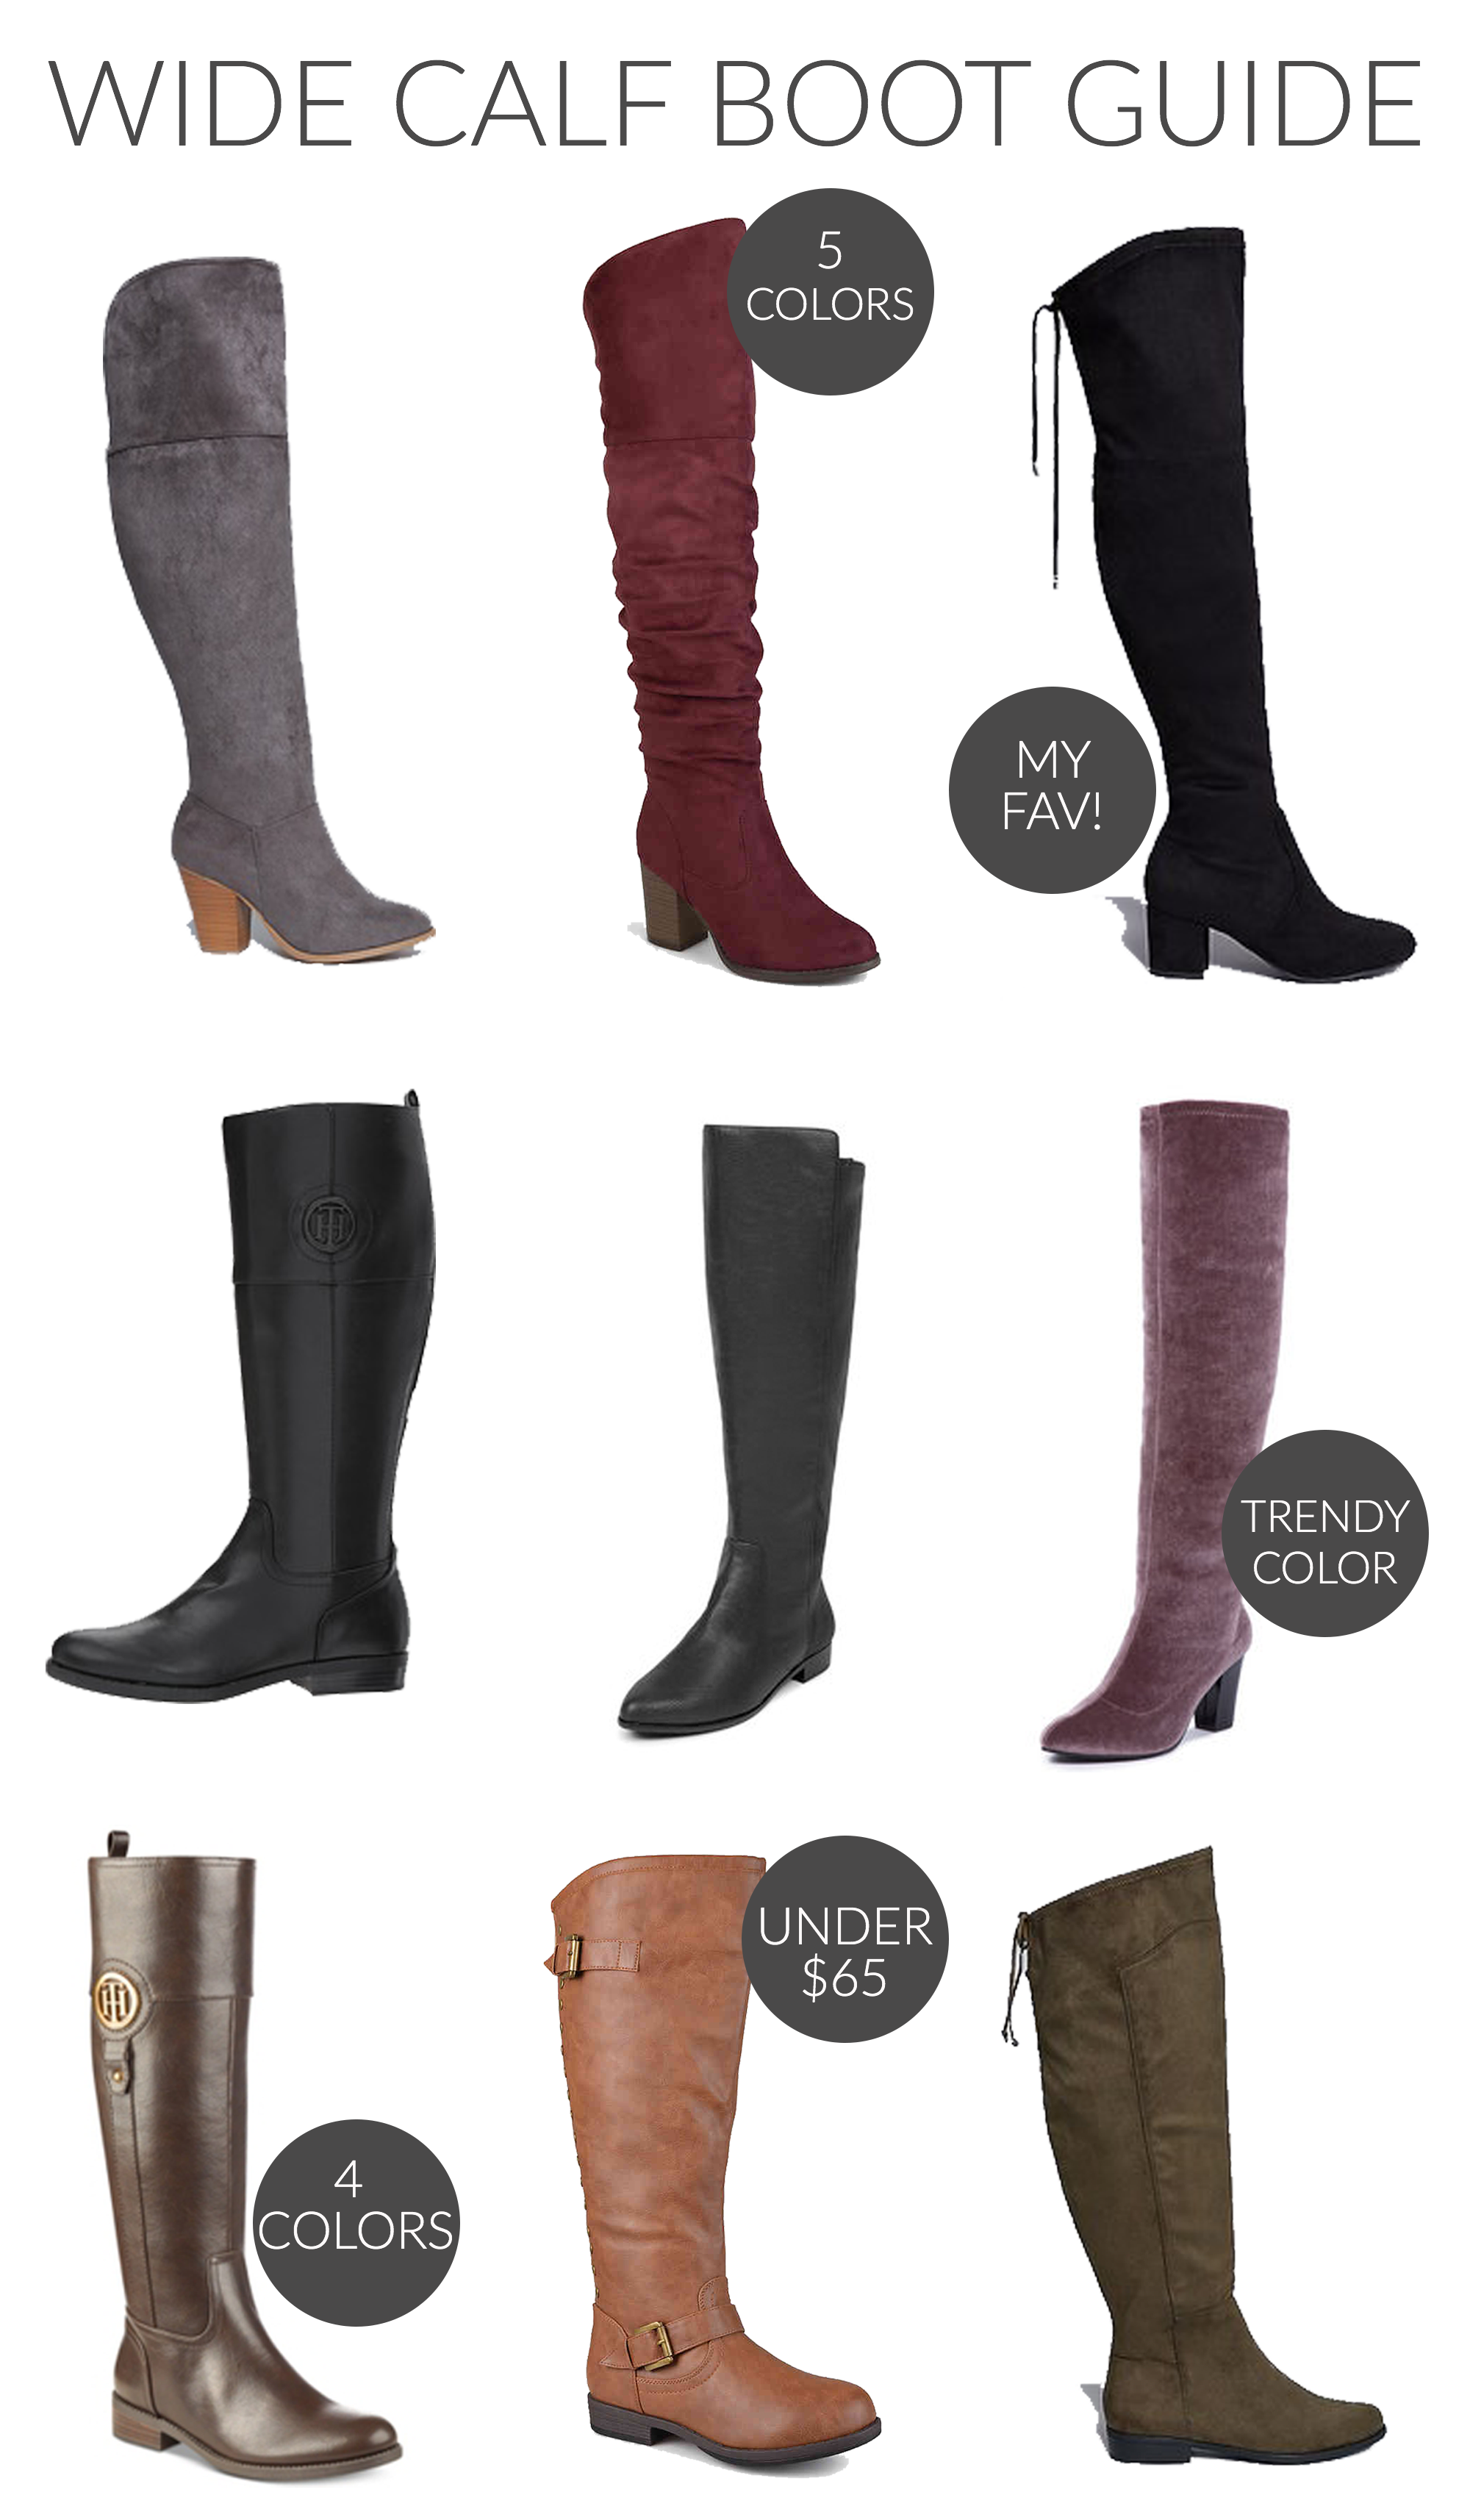 Wide Calf Boot Guide - Stylish Sassy